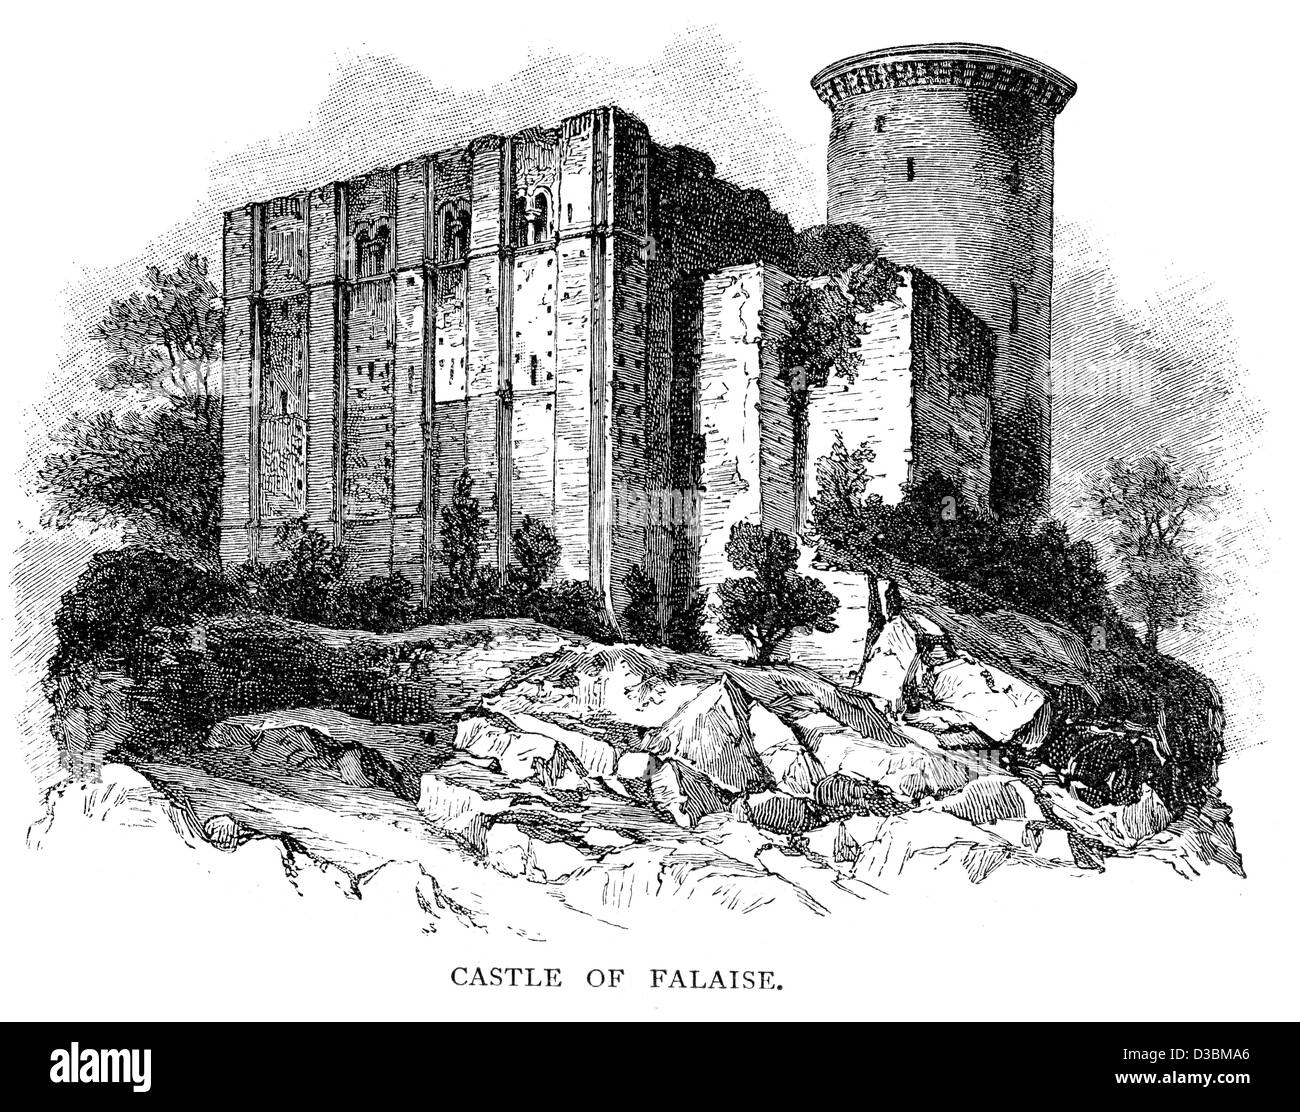 The Château de Falaise is a castle located in the south of the commune of Falaise in Normandy, France. - Stock Image